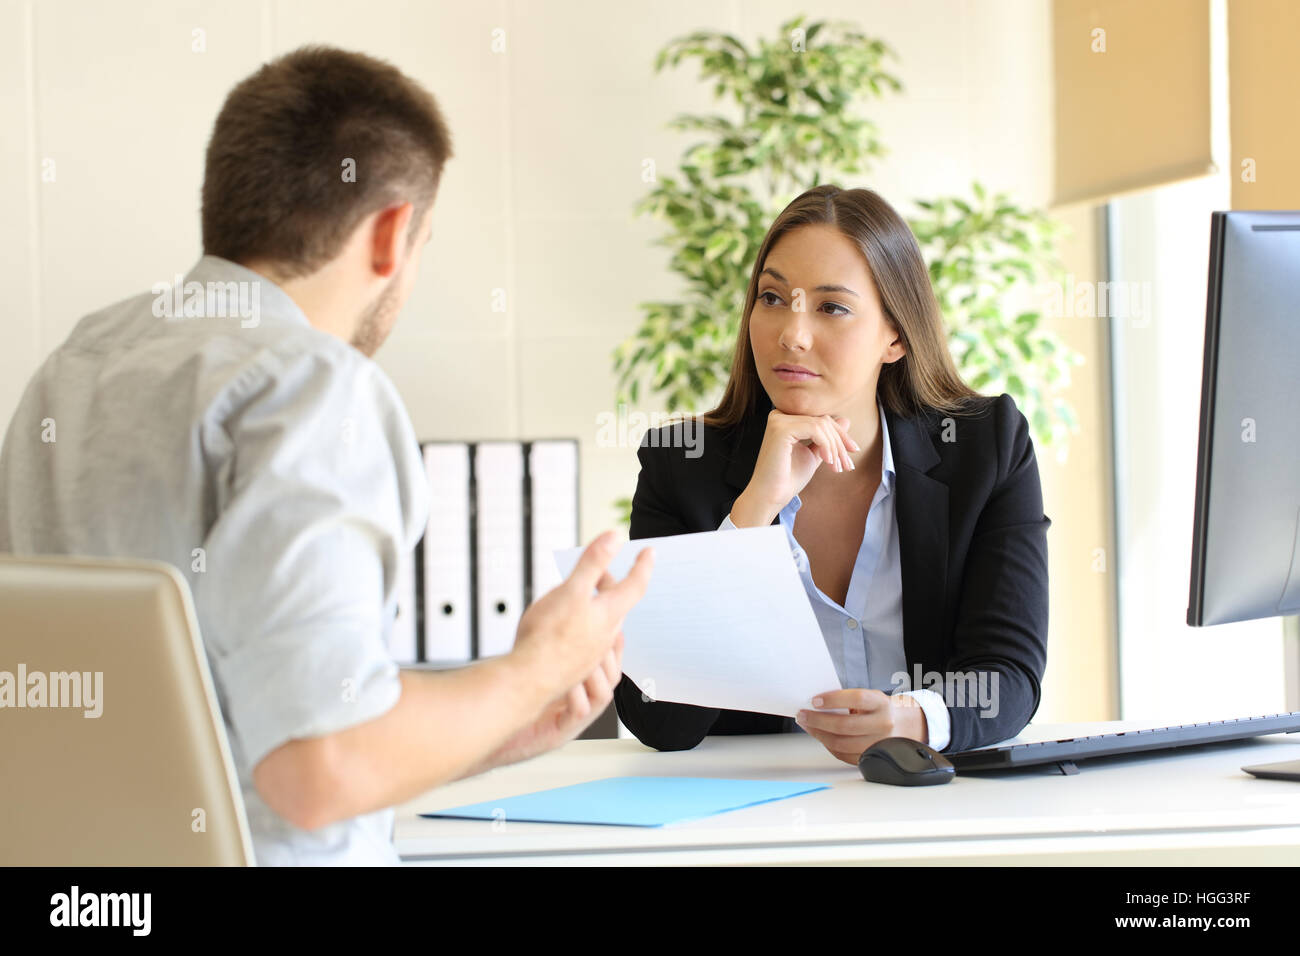 Man searching employment in a bad job interview with the interviewer looking mistrustful - Stock Image